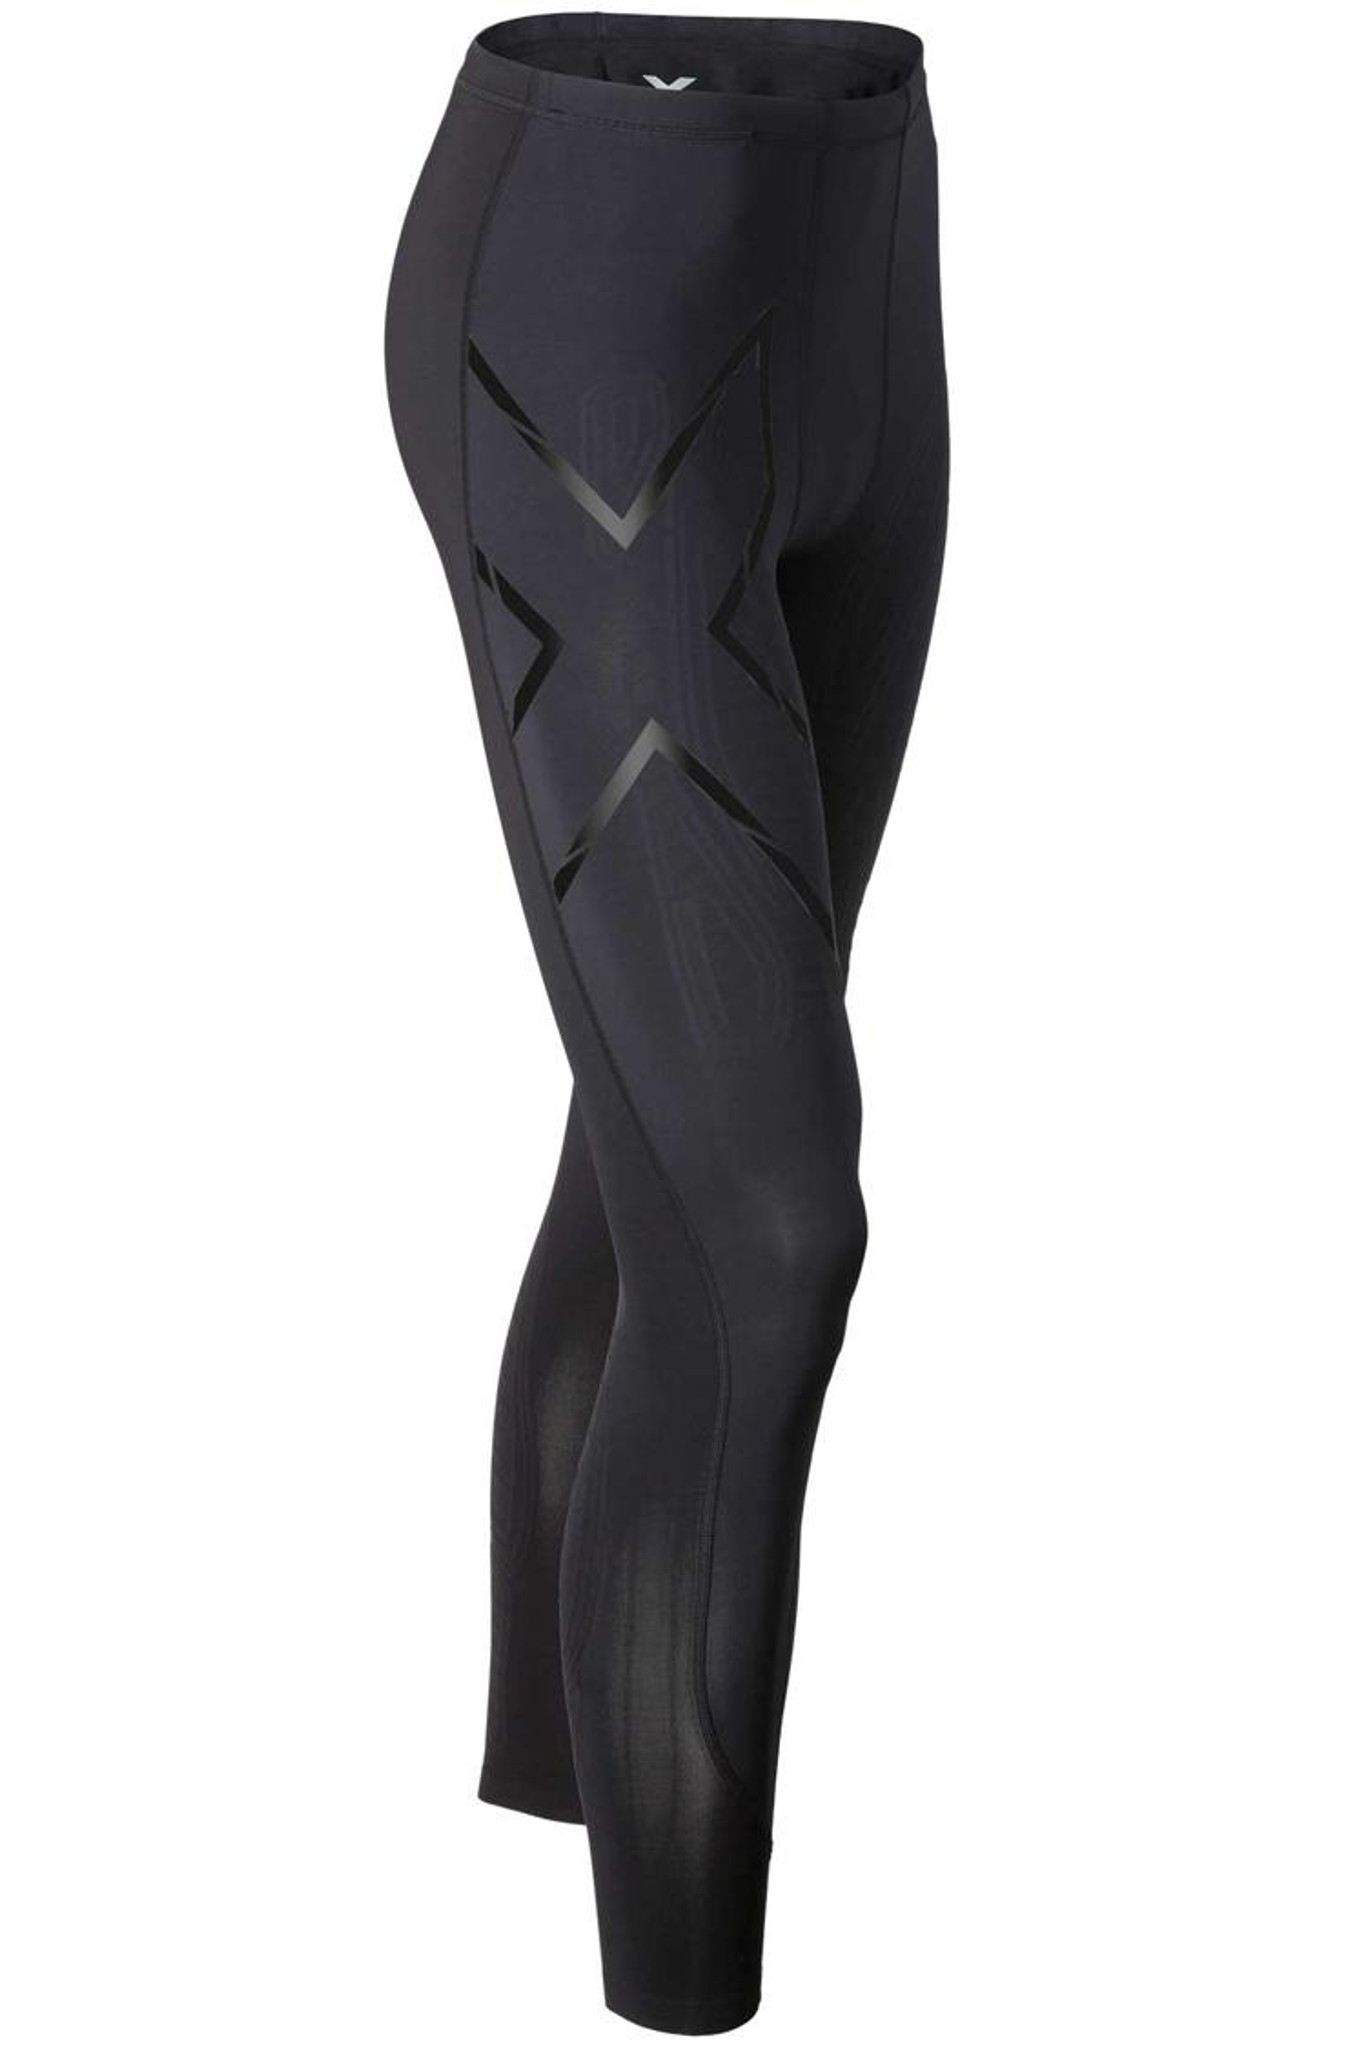 b6daa67840cd2 2XU Elite MCS Men's Black/Nero Compression Tights | MyTriathlon